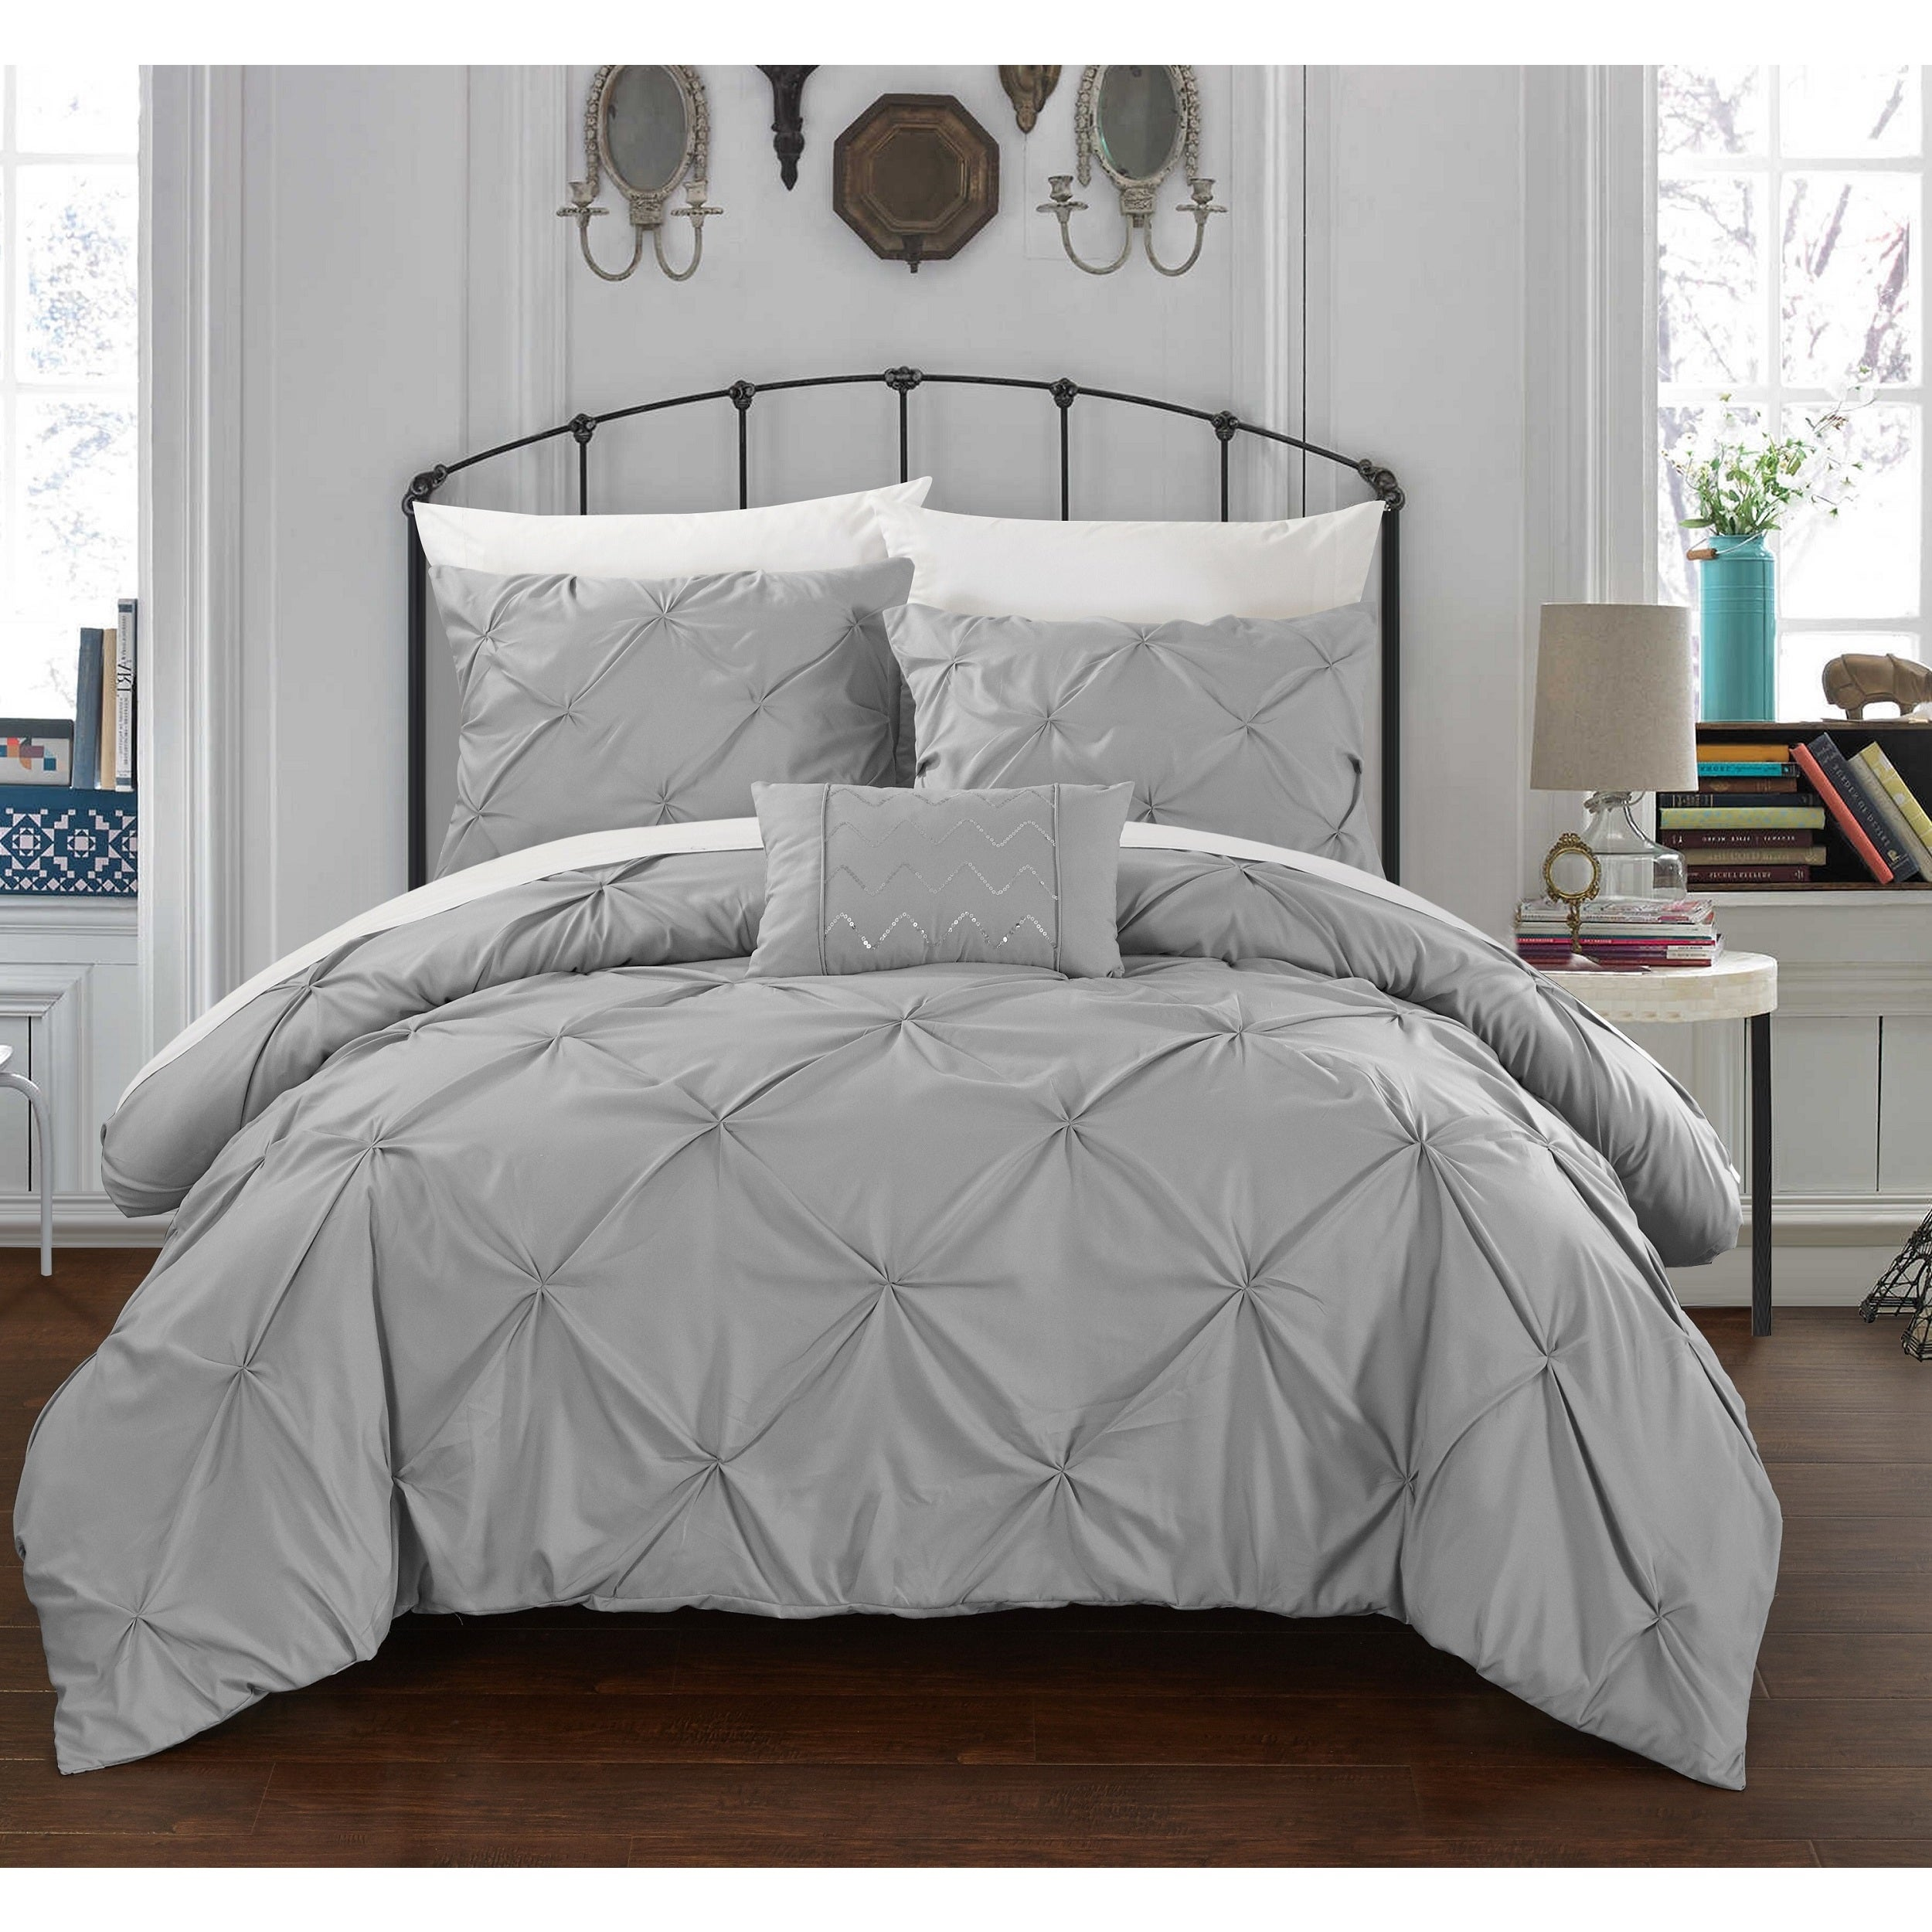 Chic Home Whitley Silver Pinch Pleated 4-Piece Duvet Cover Set